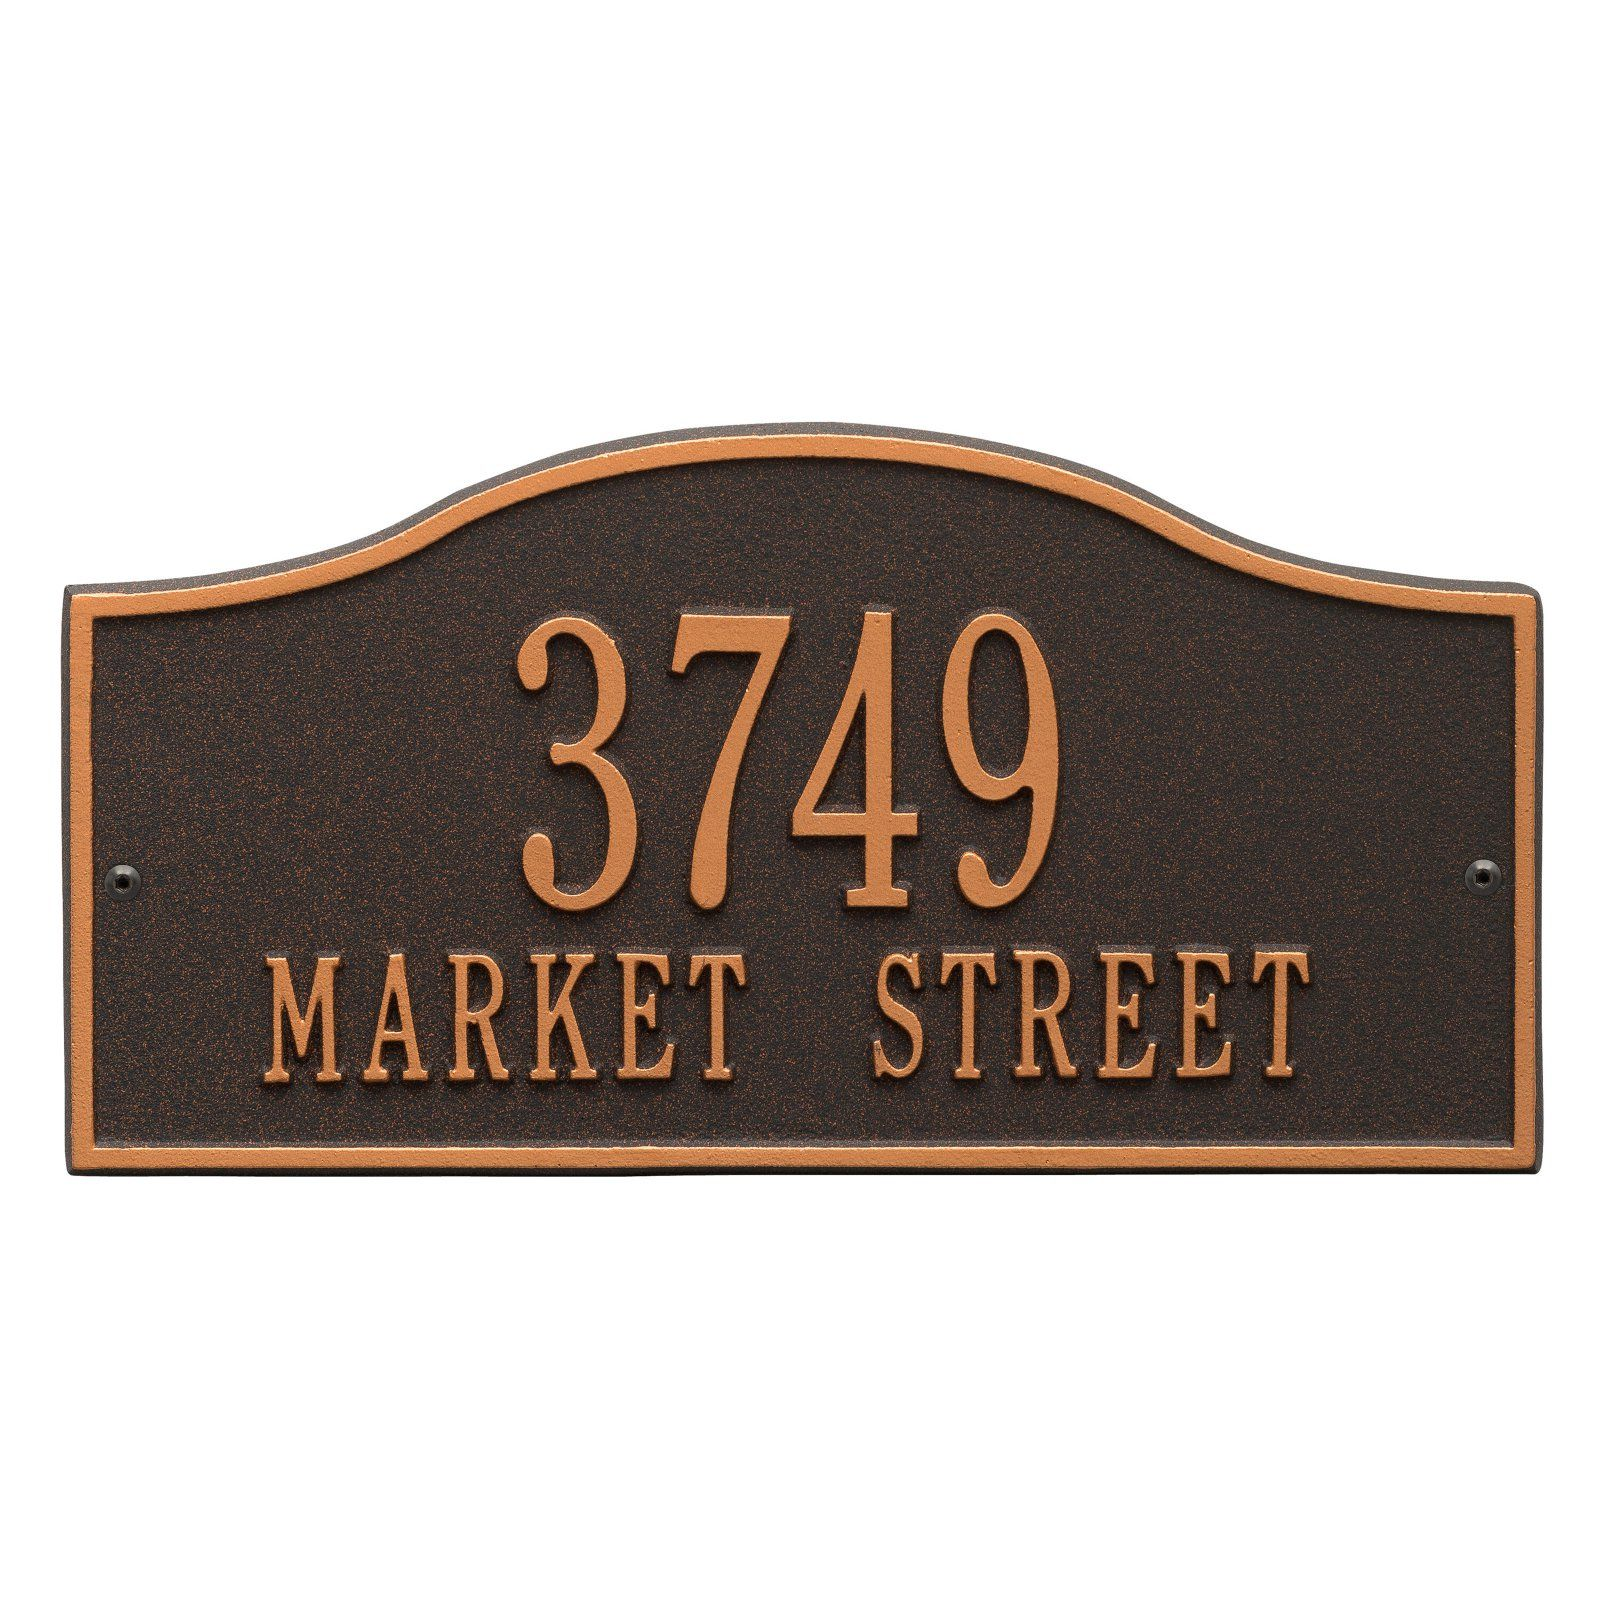 Whitehall Rolling Hills 2 Line Personalized Address Plaque Products In 2019 Address Plaque Whitehall Products Silver Walls